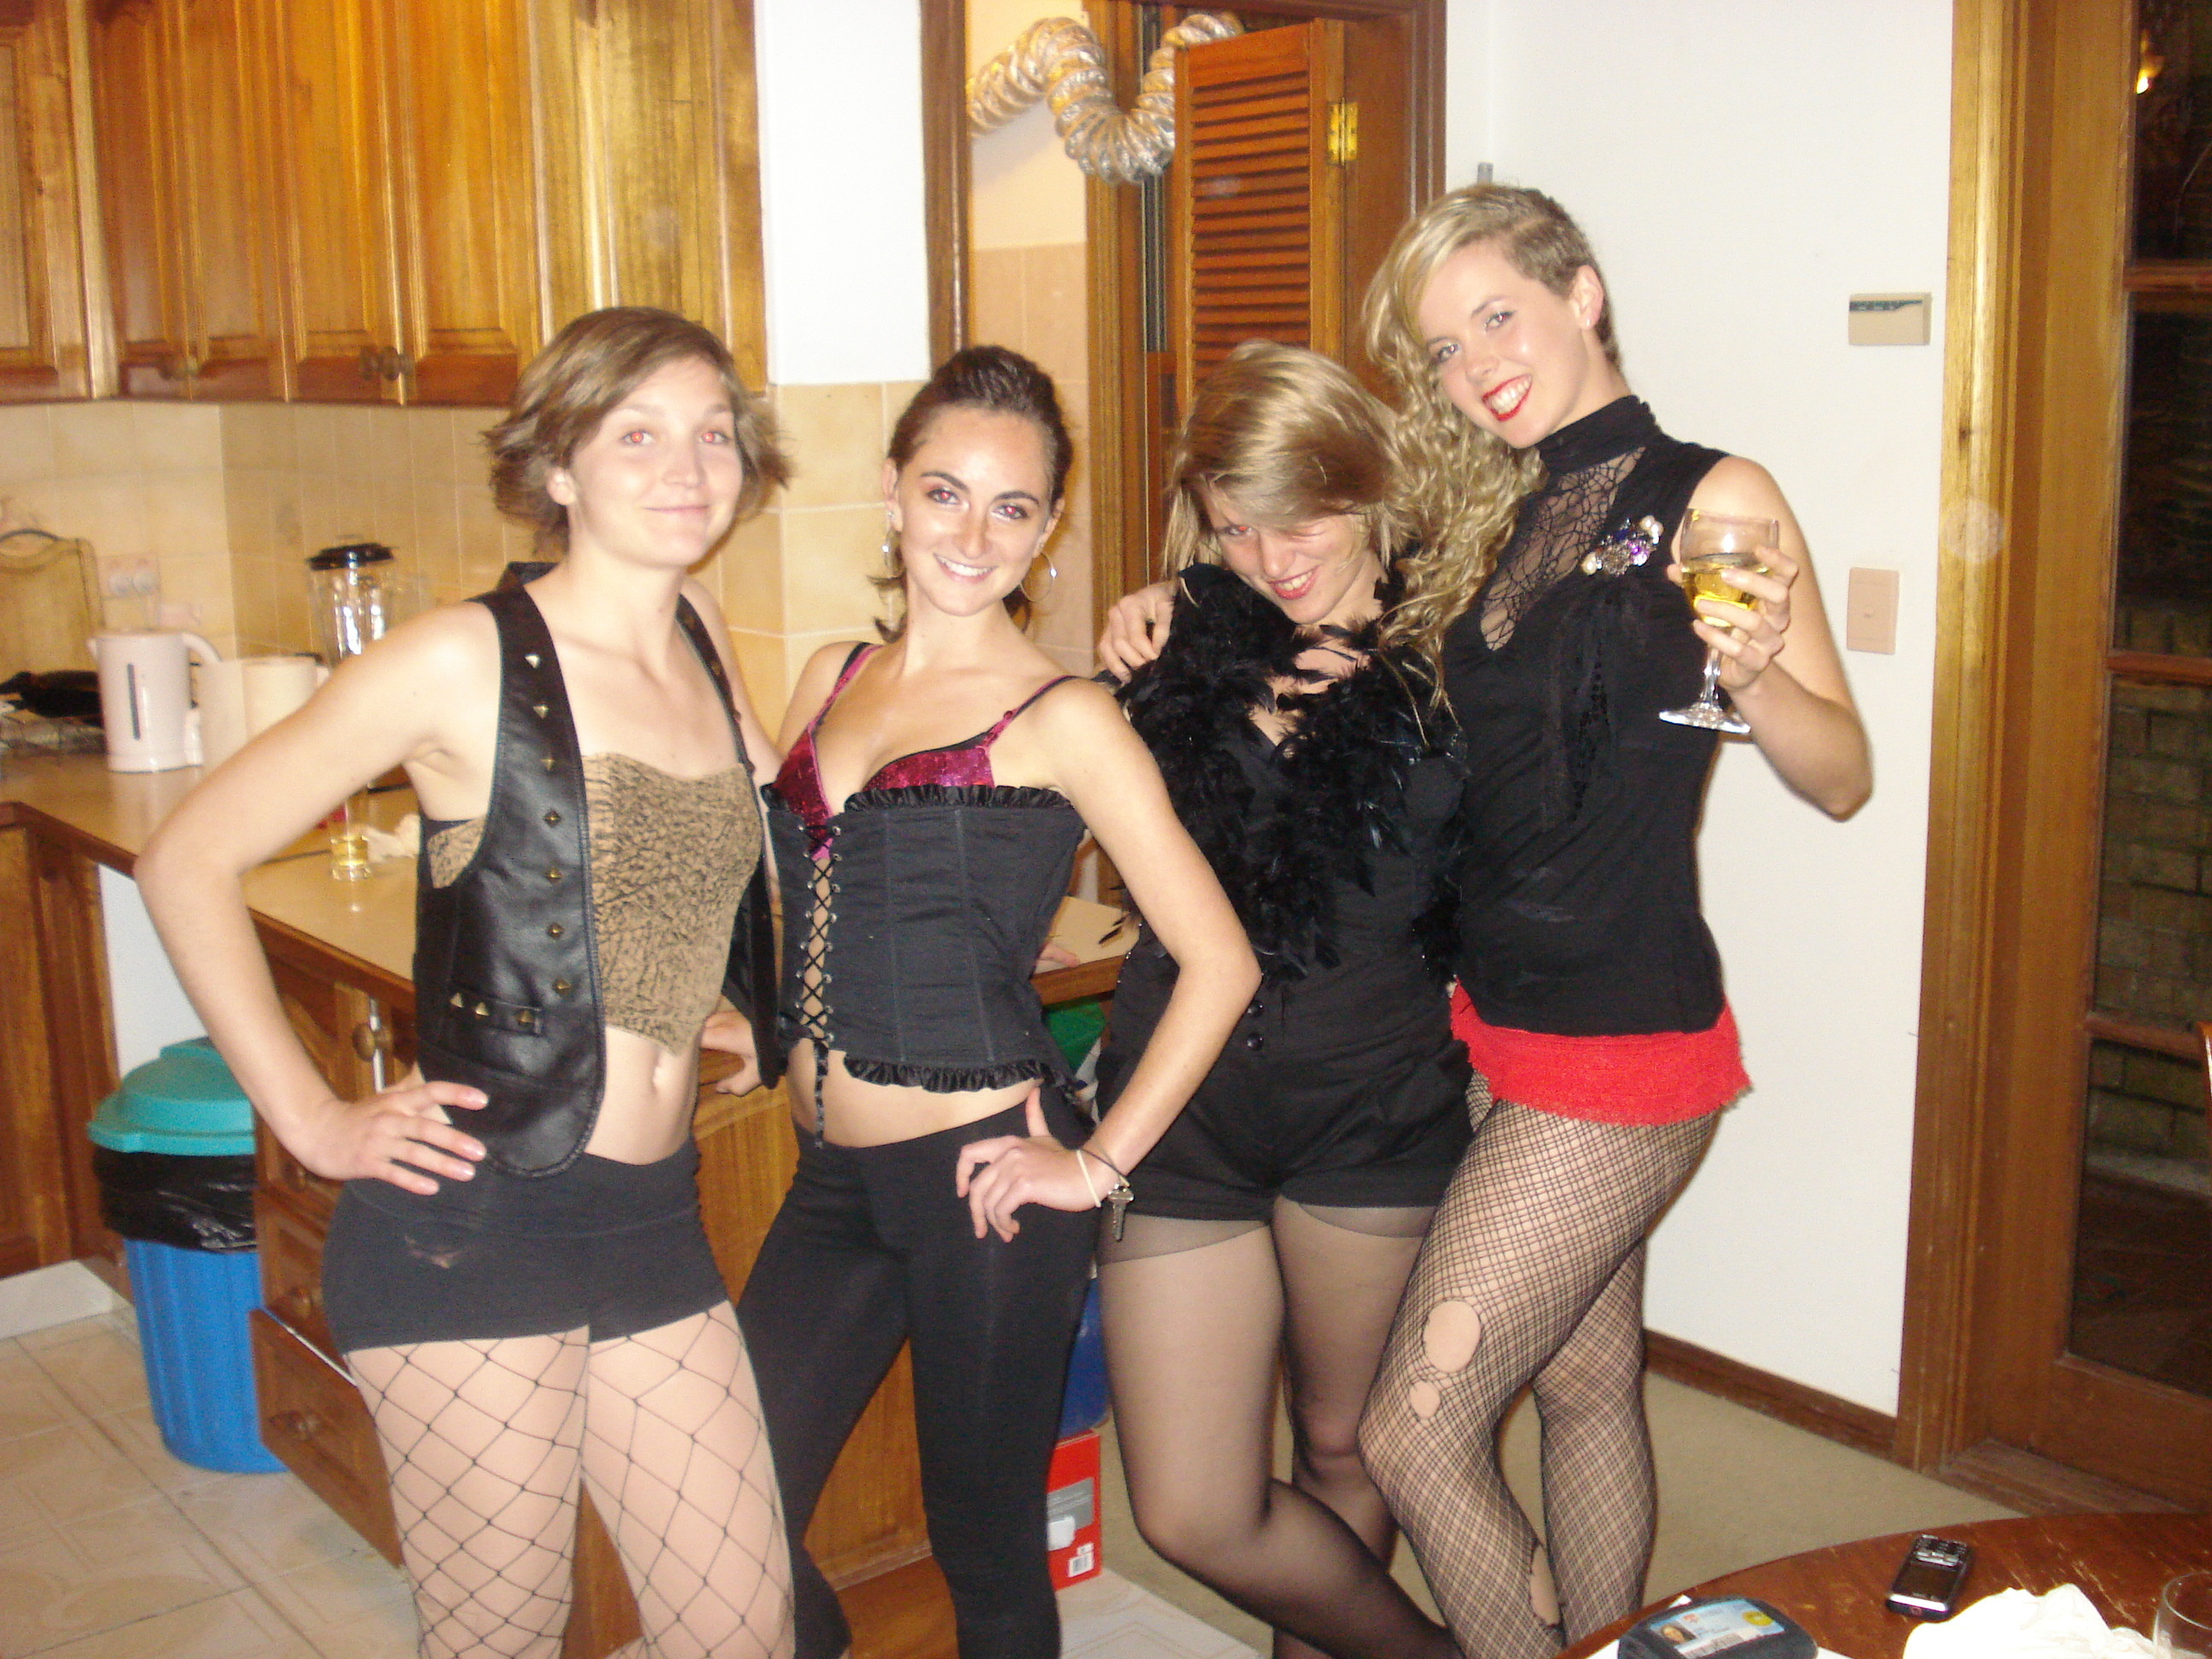 Rocky Horror Picture Show with the roommates